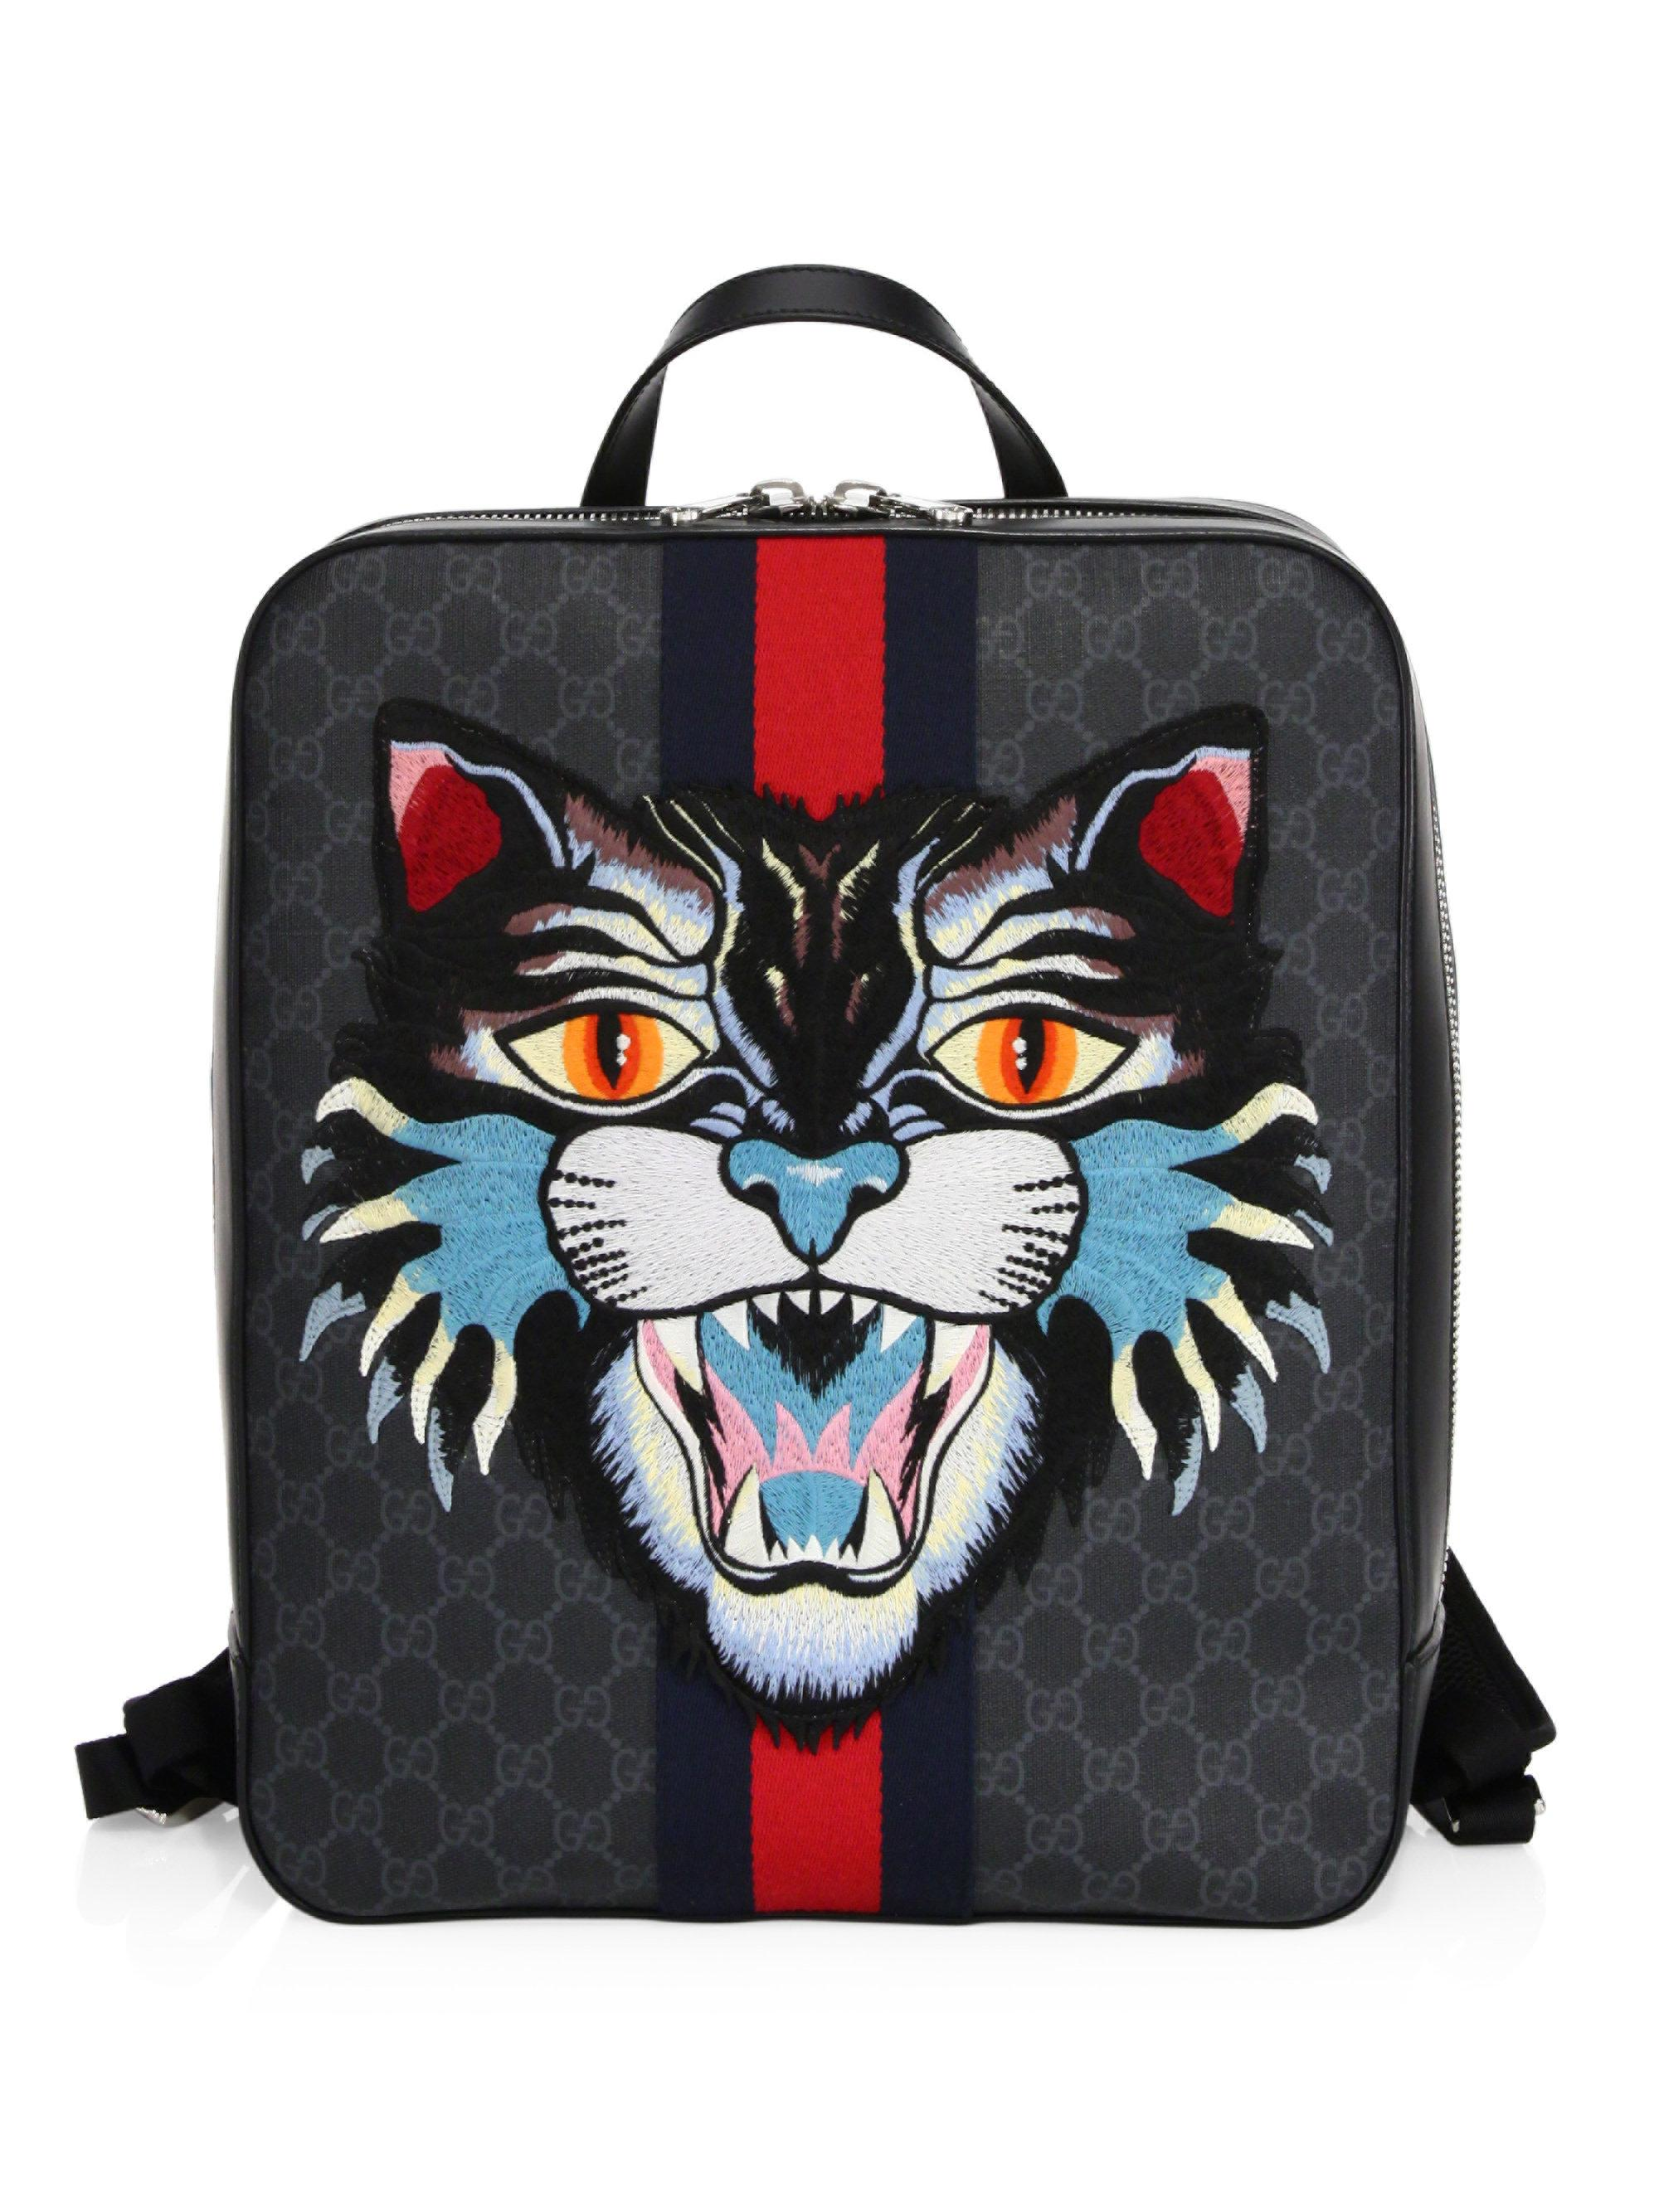 faa5389b50a Gucci Gg Angry Cat Backpack in Black for Men - Lyst